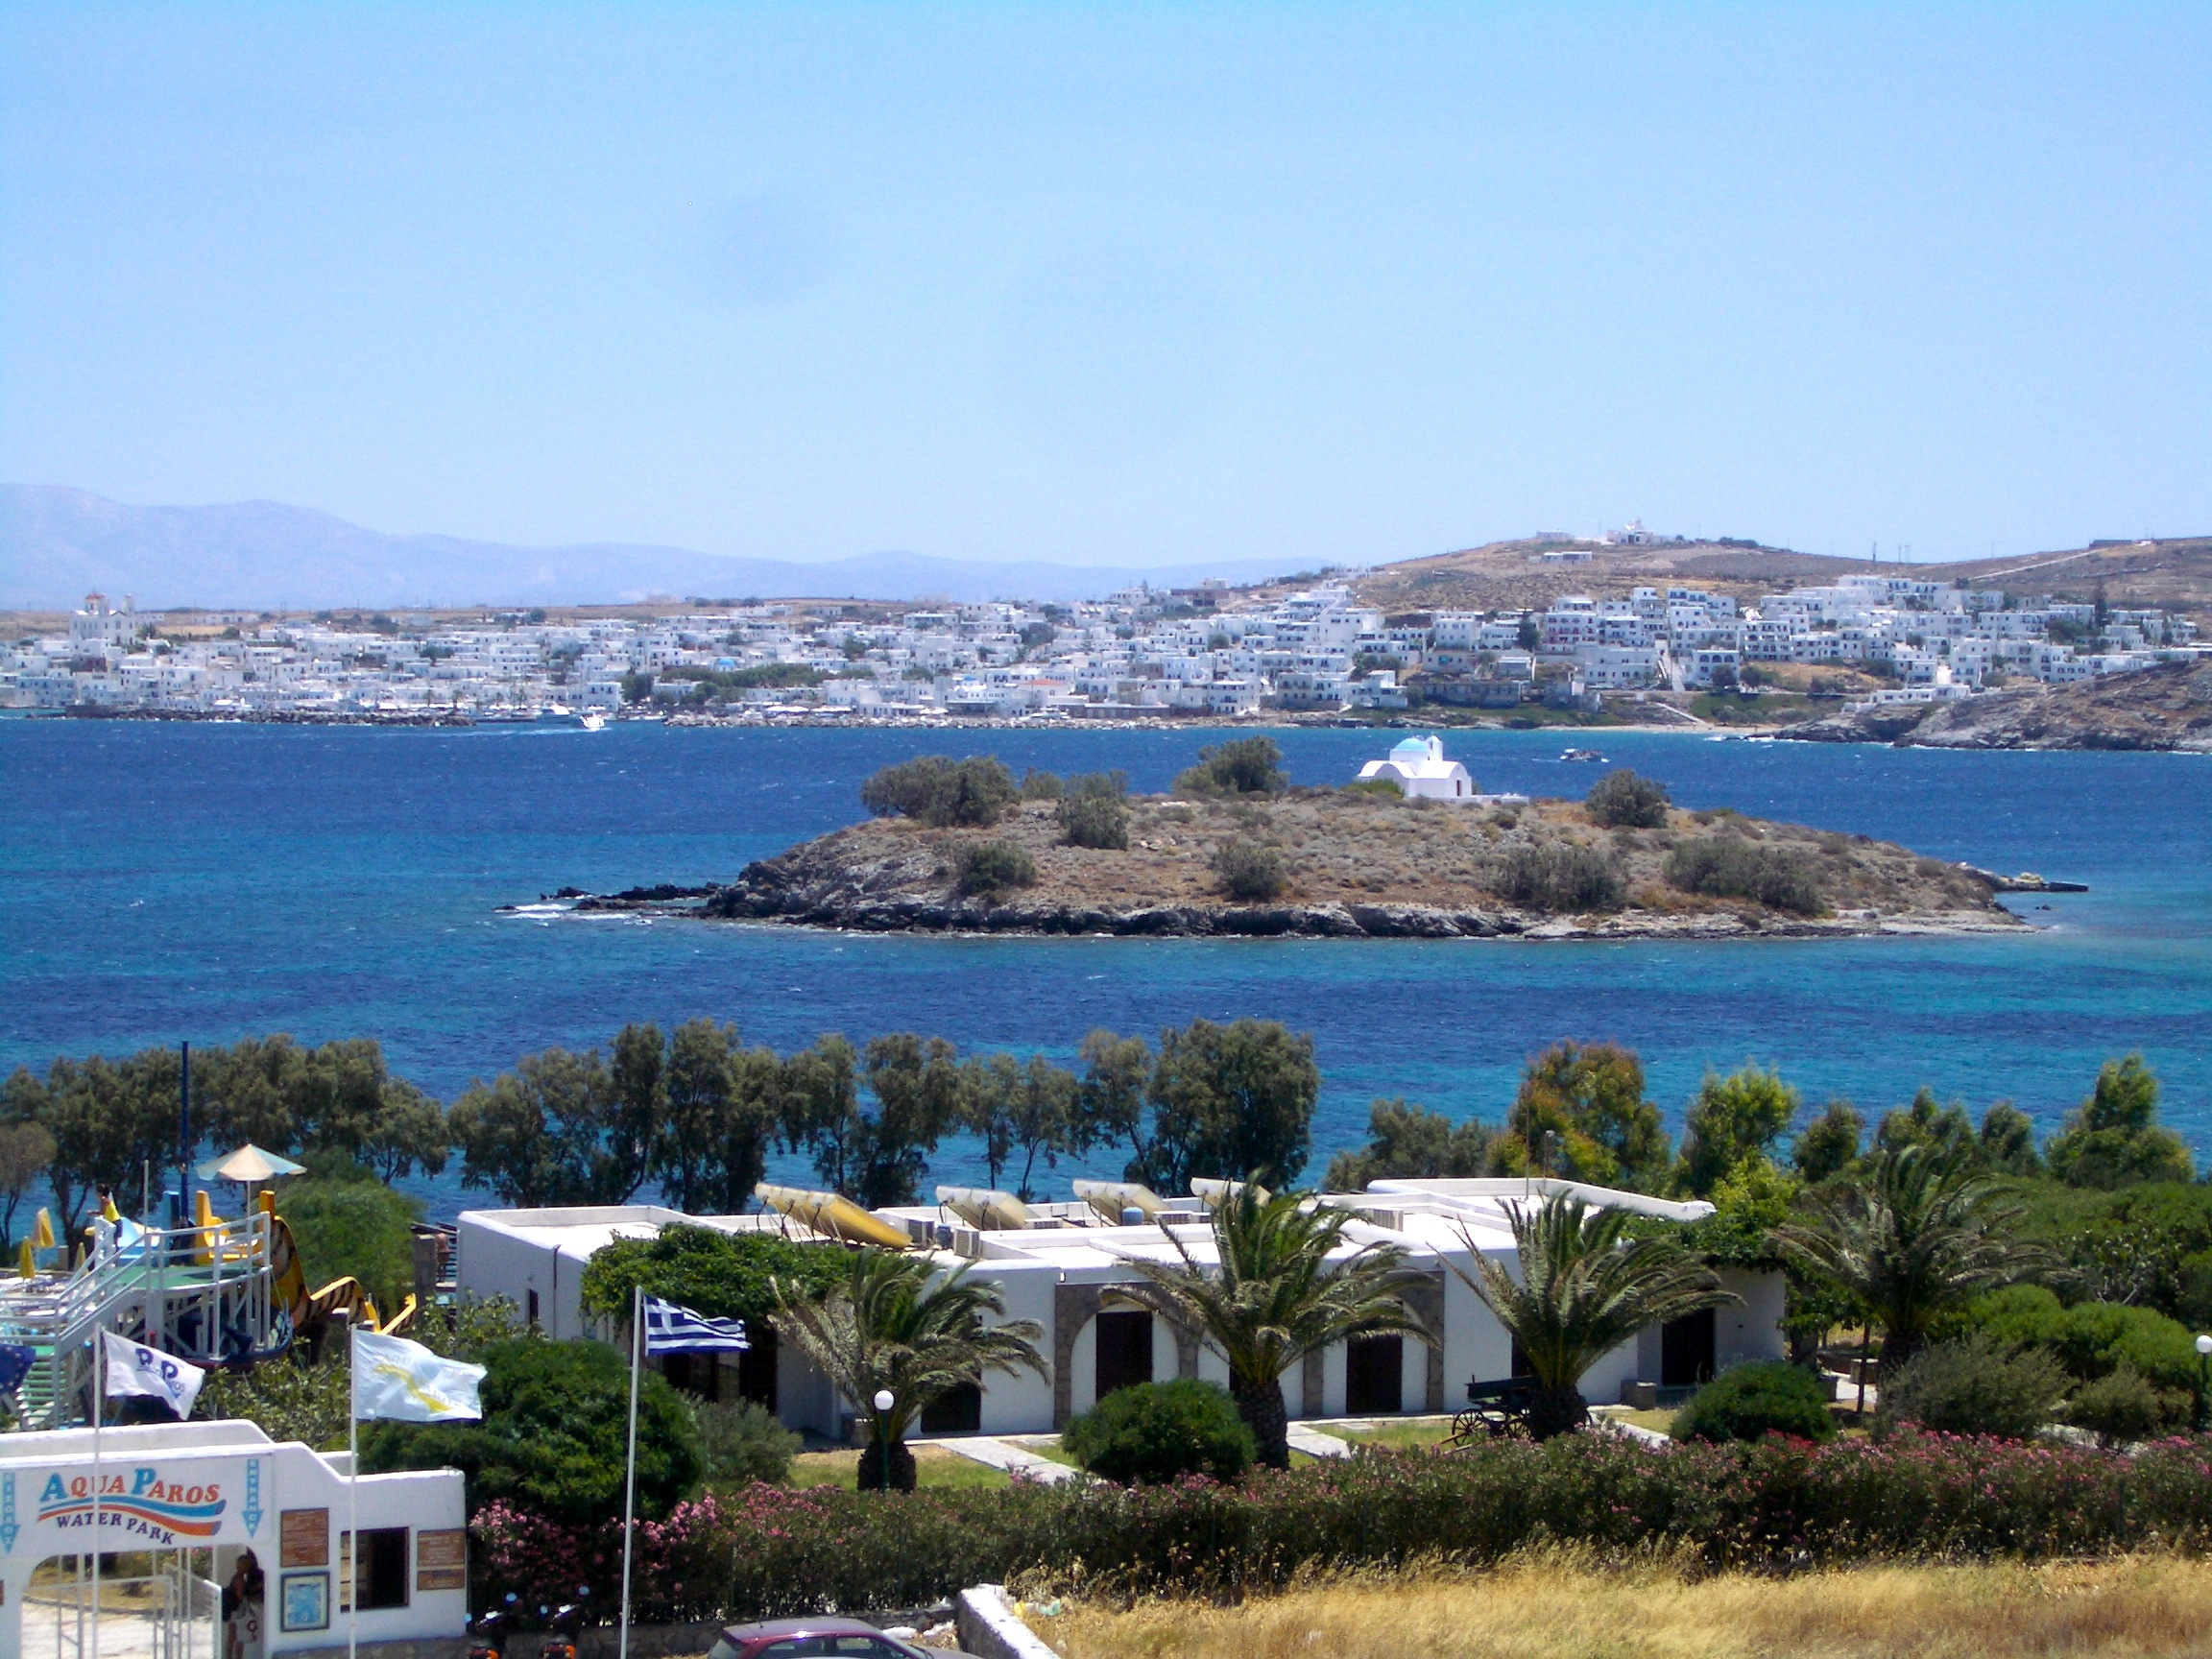 bilder aus paros griechenland insider urlaub. Black Bedroom Furniture Sets. Home Design Ideas